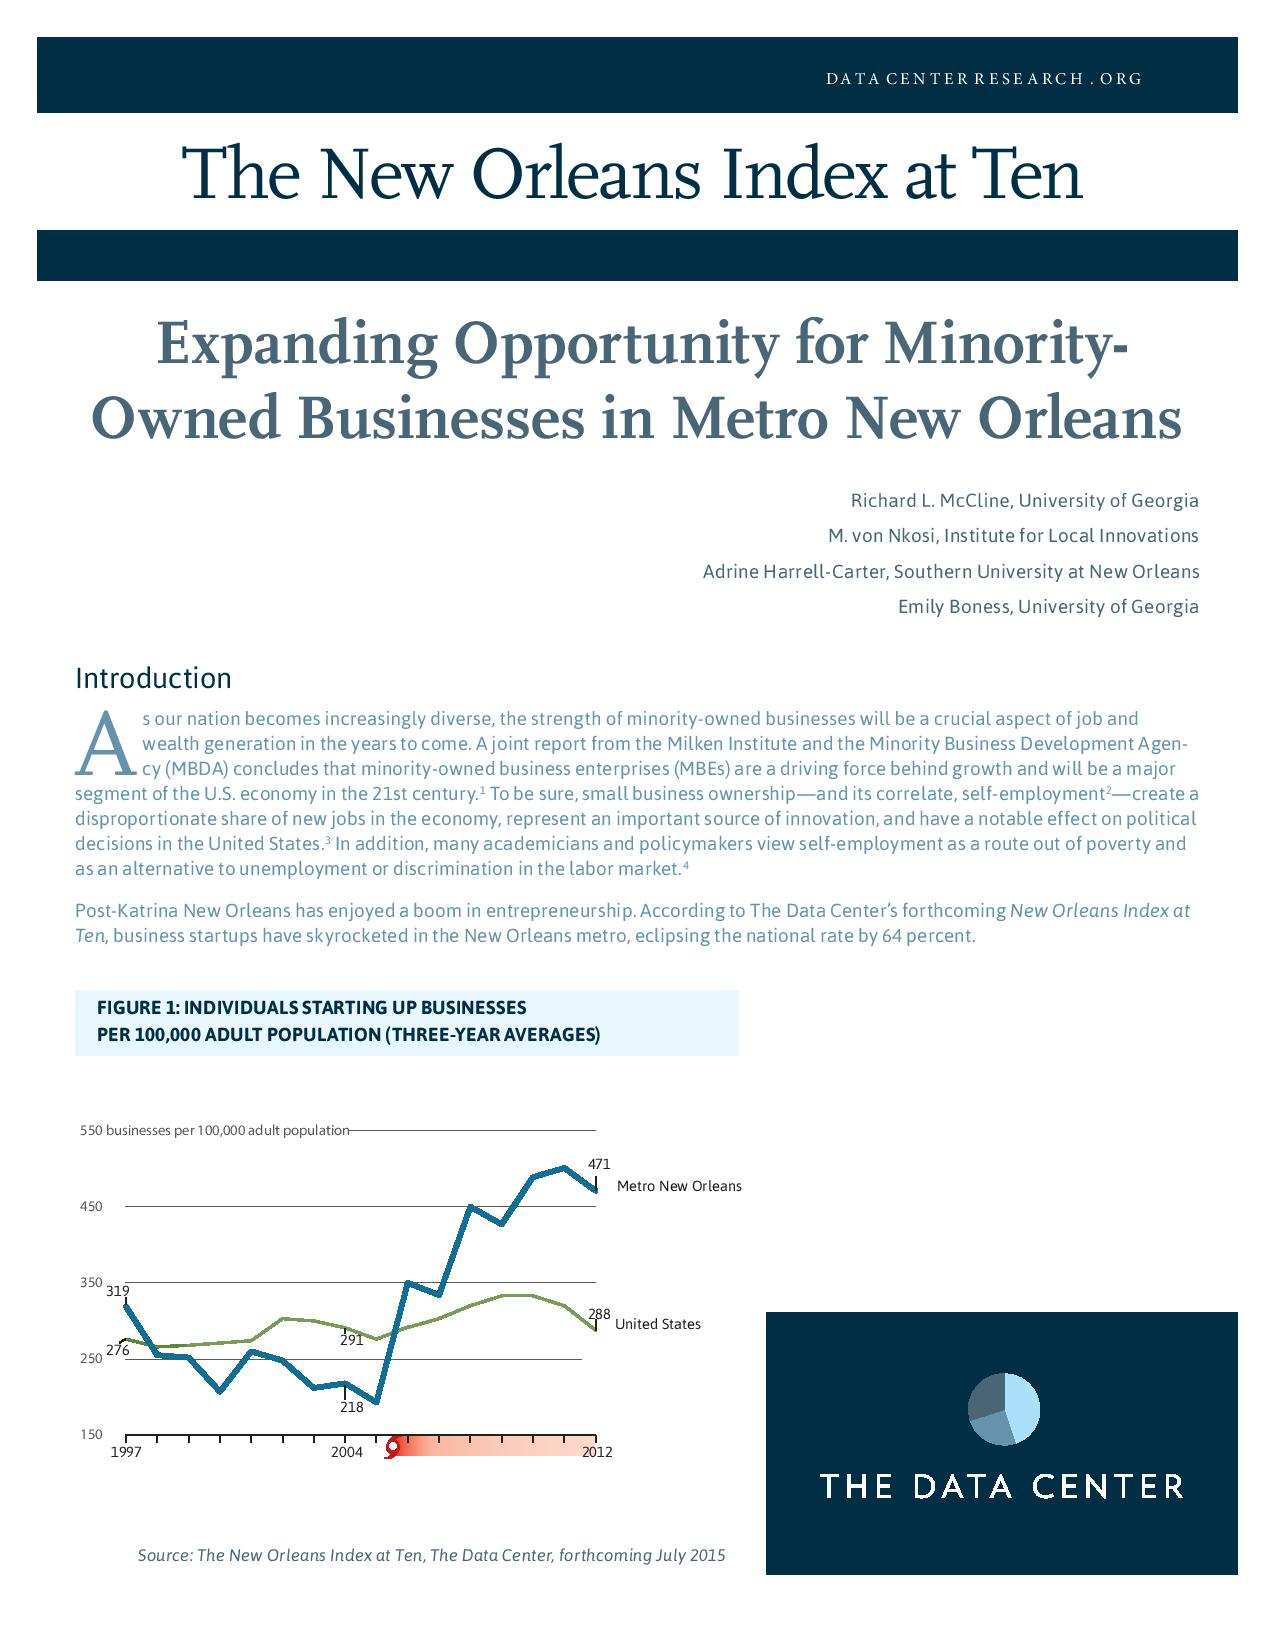 Expanding Opportunity for Minority-Owned Businesses in Metro New Orleans